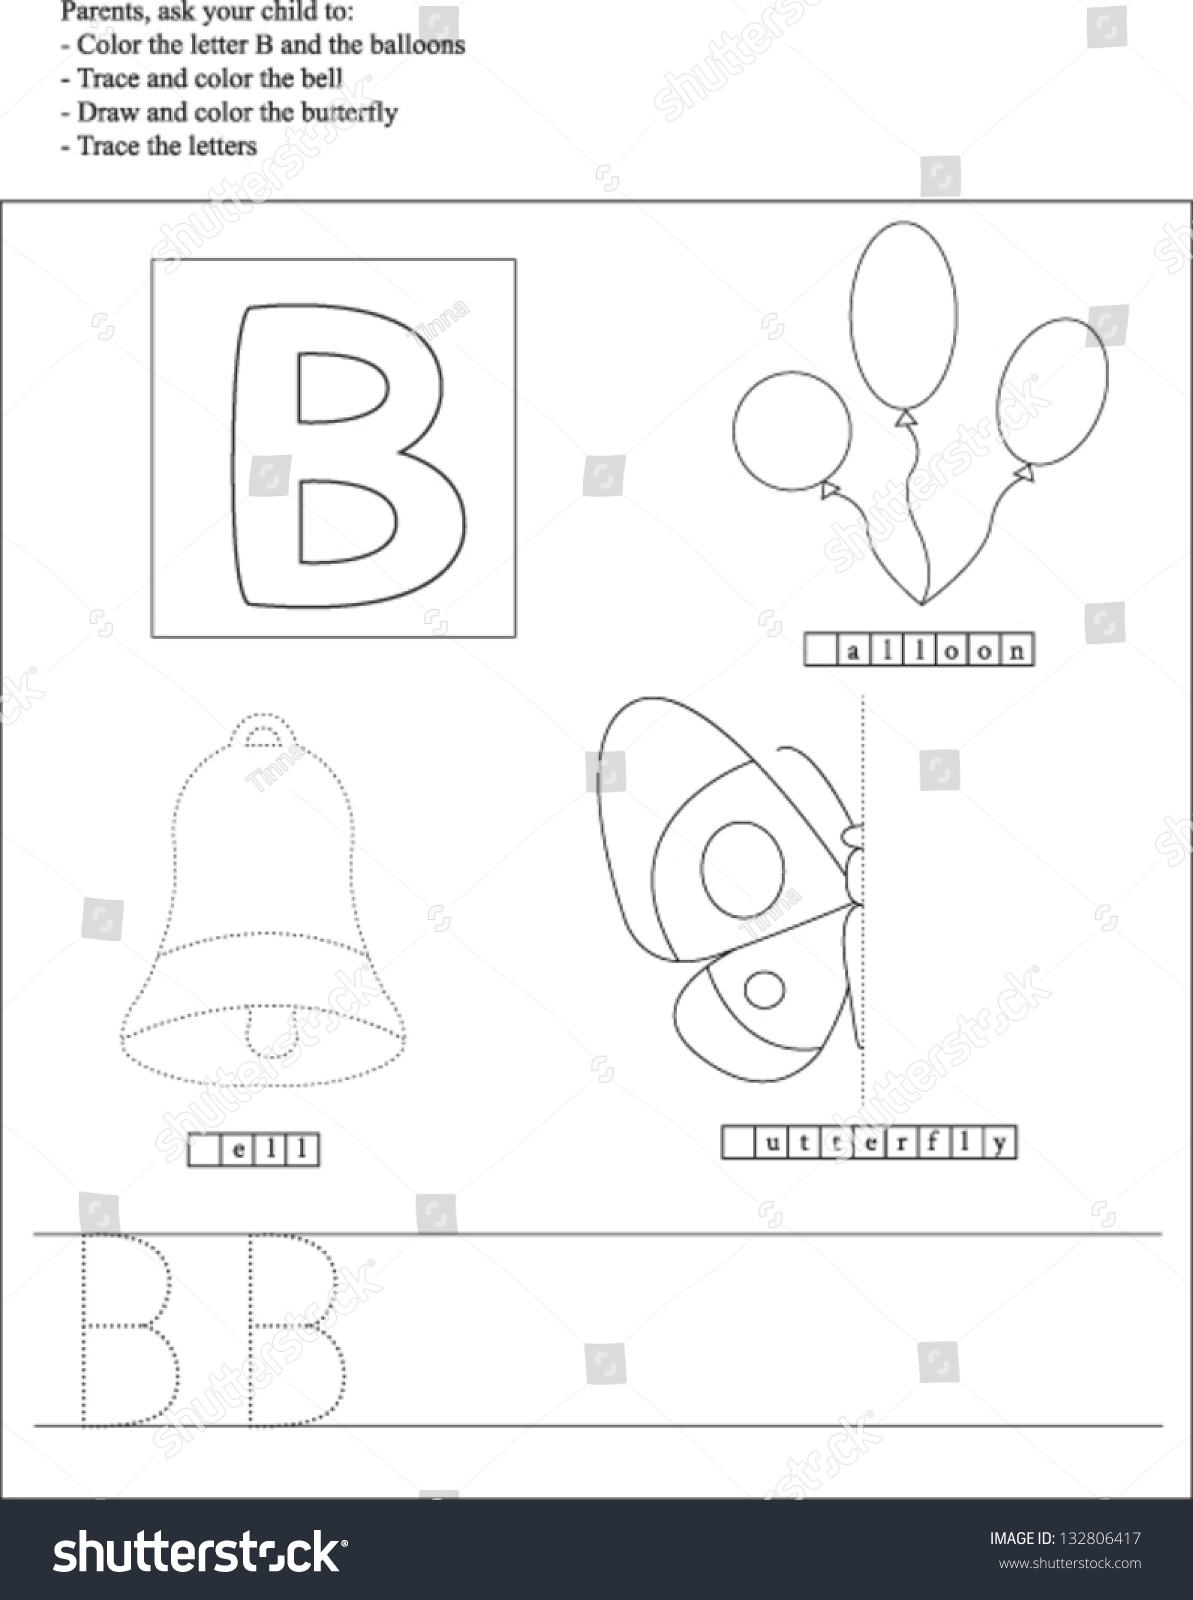 Trace Color Letter B Worksheet Preschoolers Stock Vector